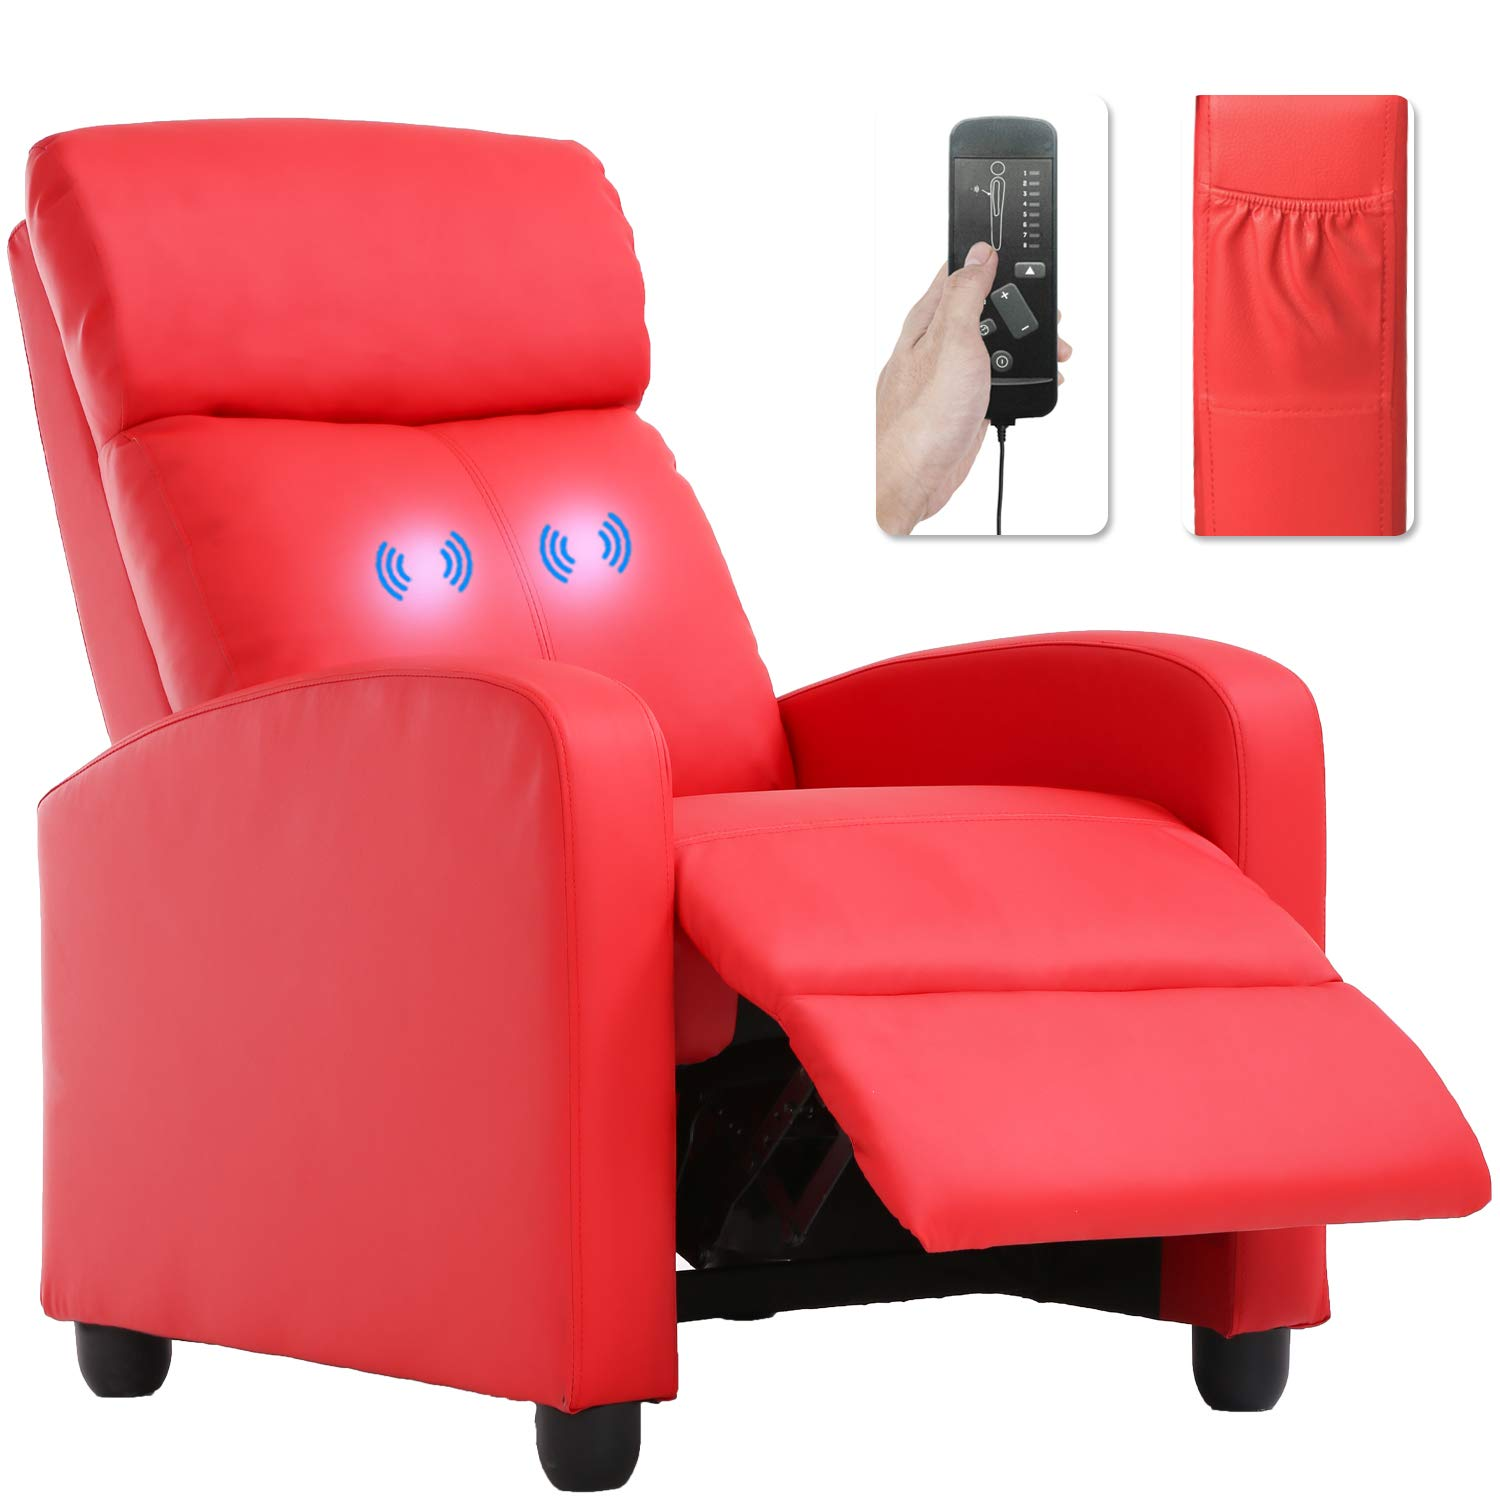 Recliner Chair For Living Room Home Theater Seating